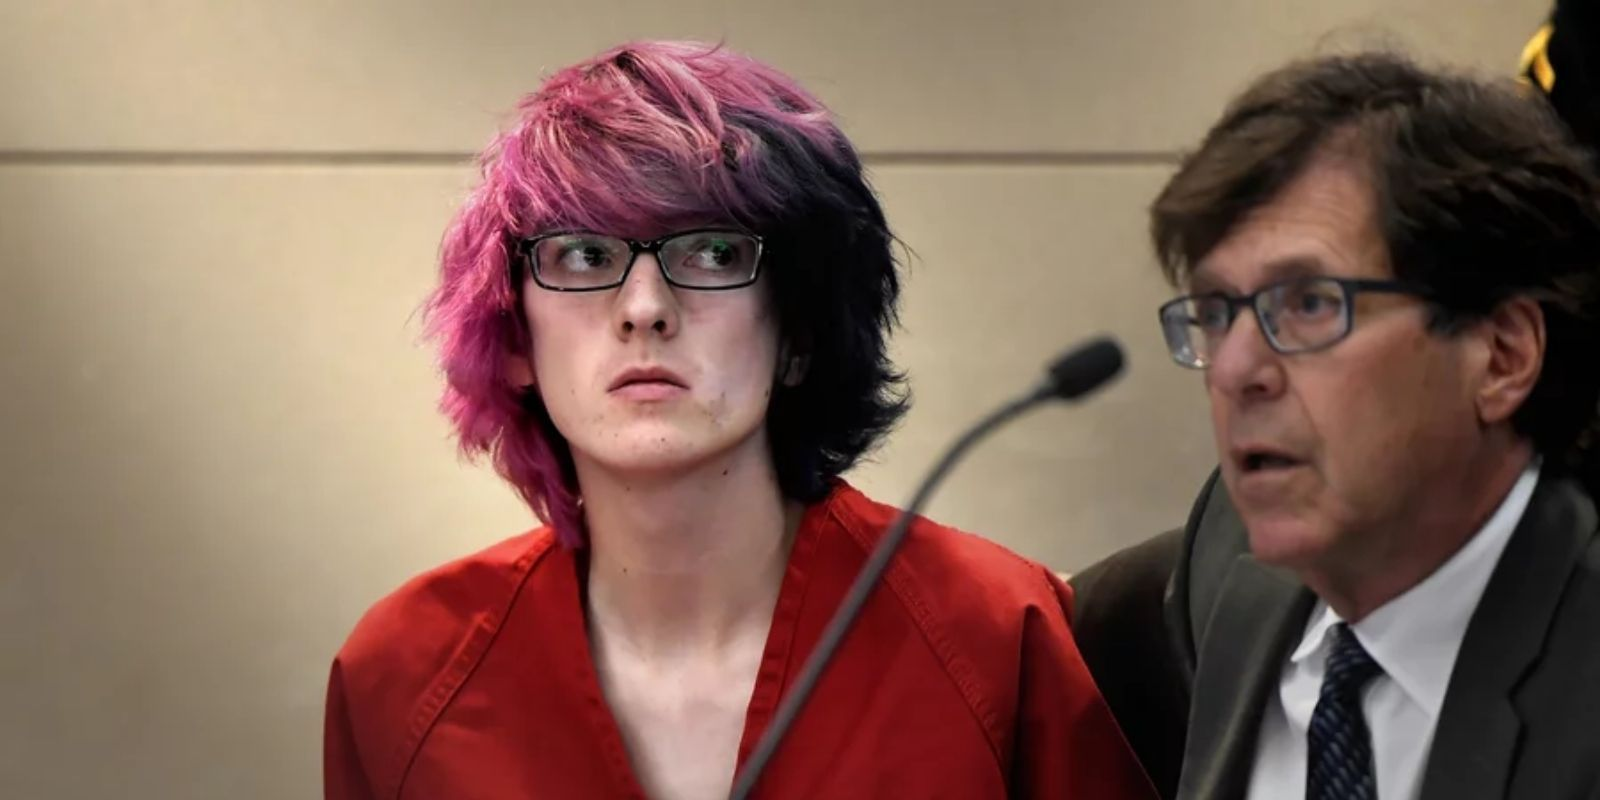 School shooter who targeted 'transphobic' classmates sentenced to life in prison